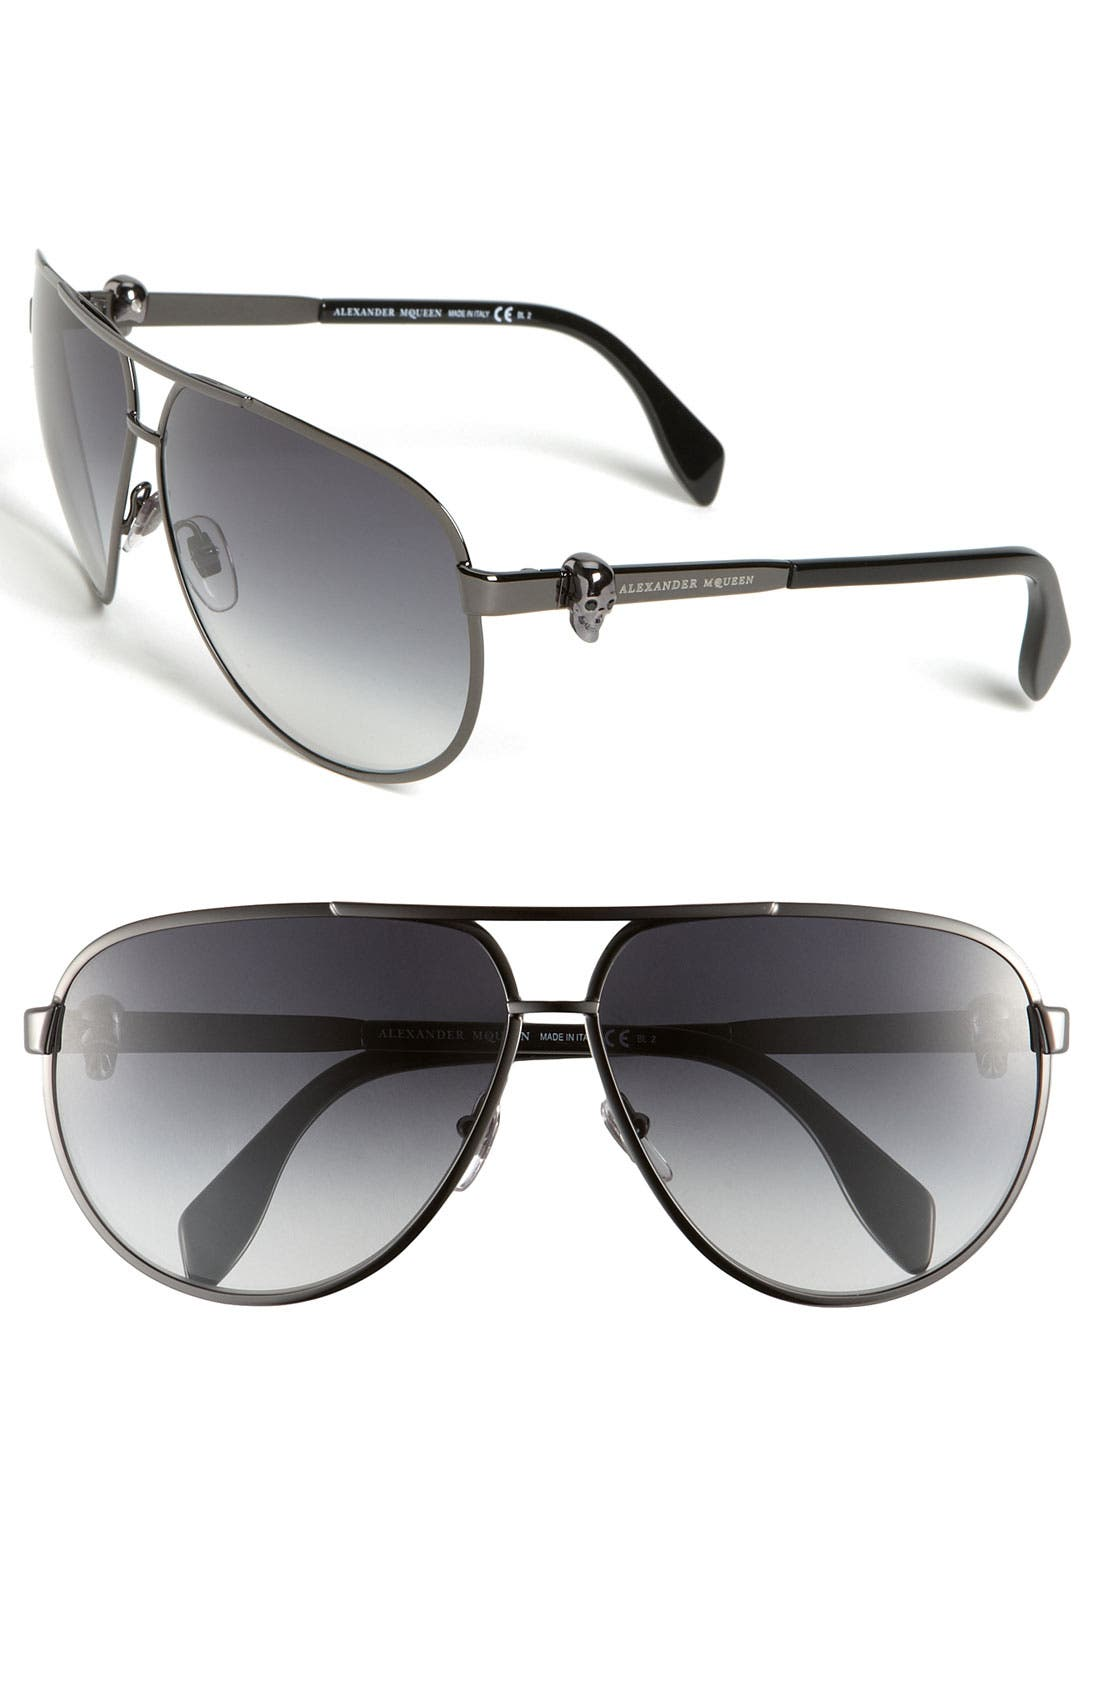 Main Image - Alexander McQueen 65mm Skull Temple Metal Aviator Sunglasses